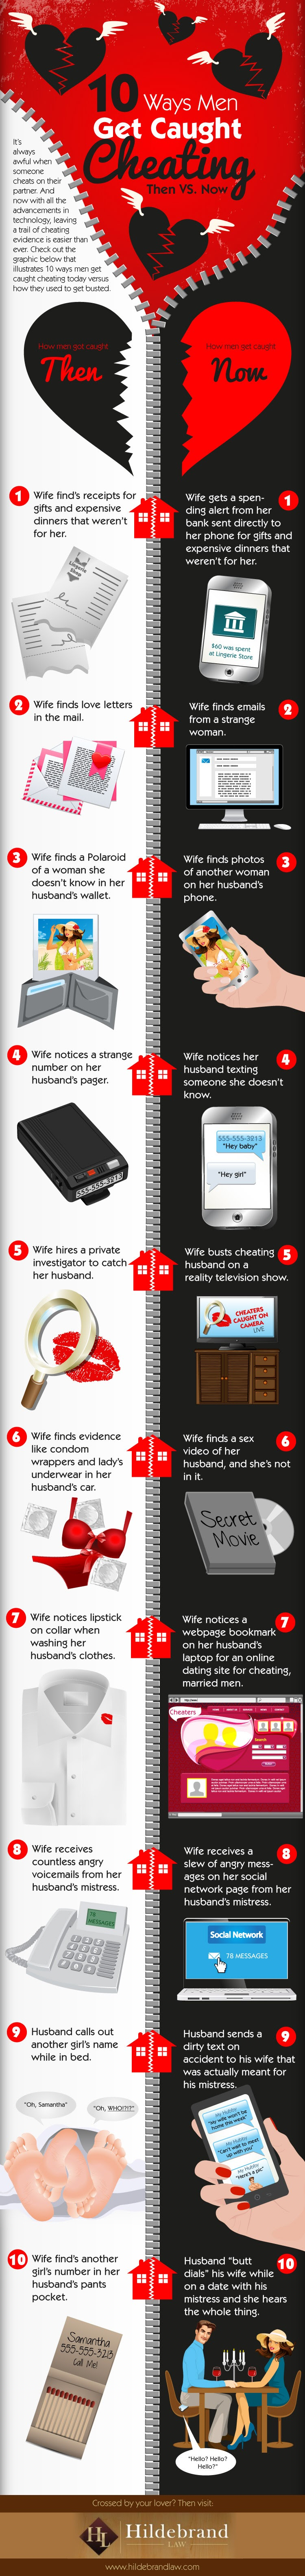 10 Ways Husband Get Caught Cheating Then And Now #infographic